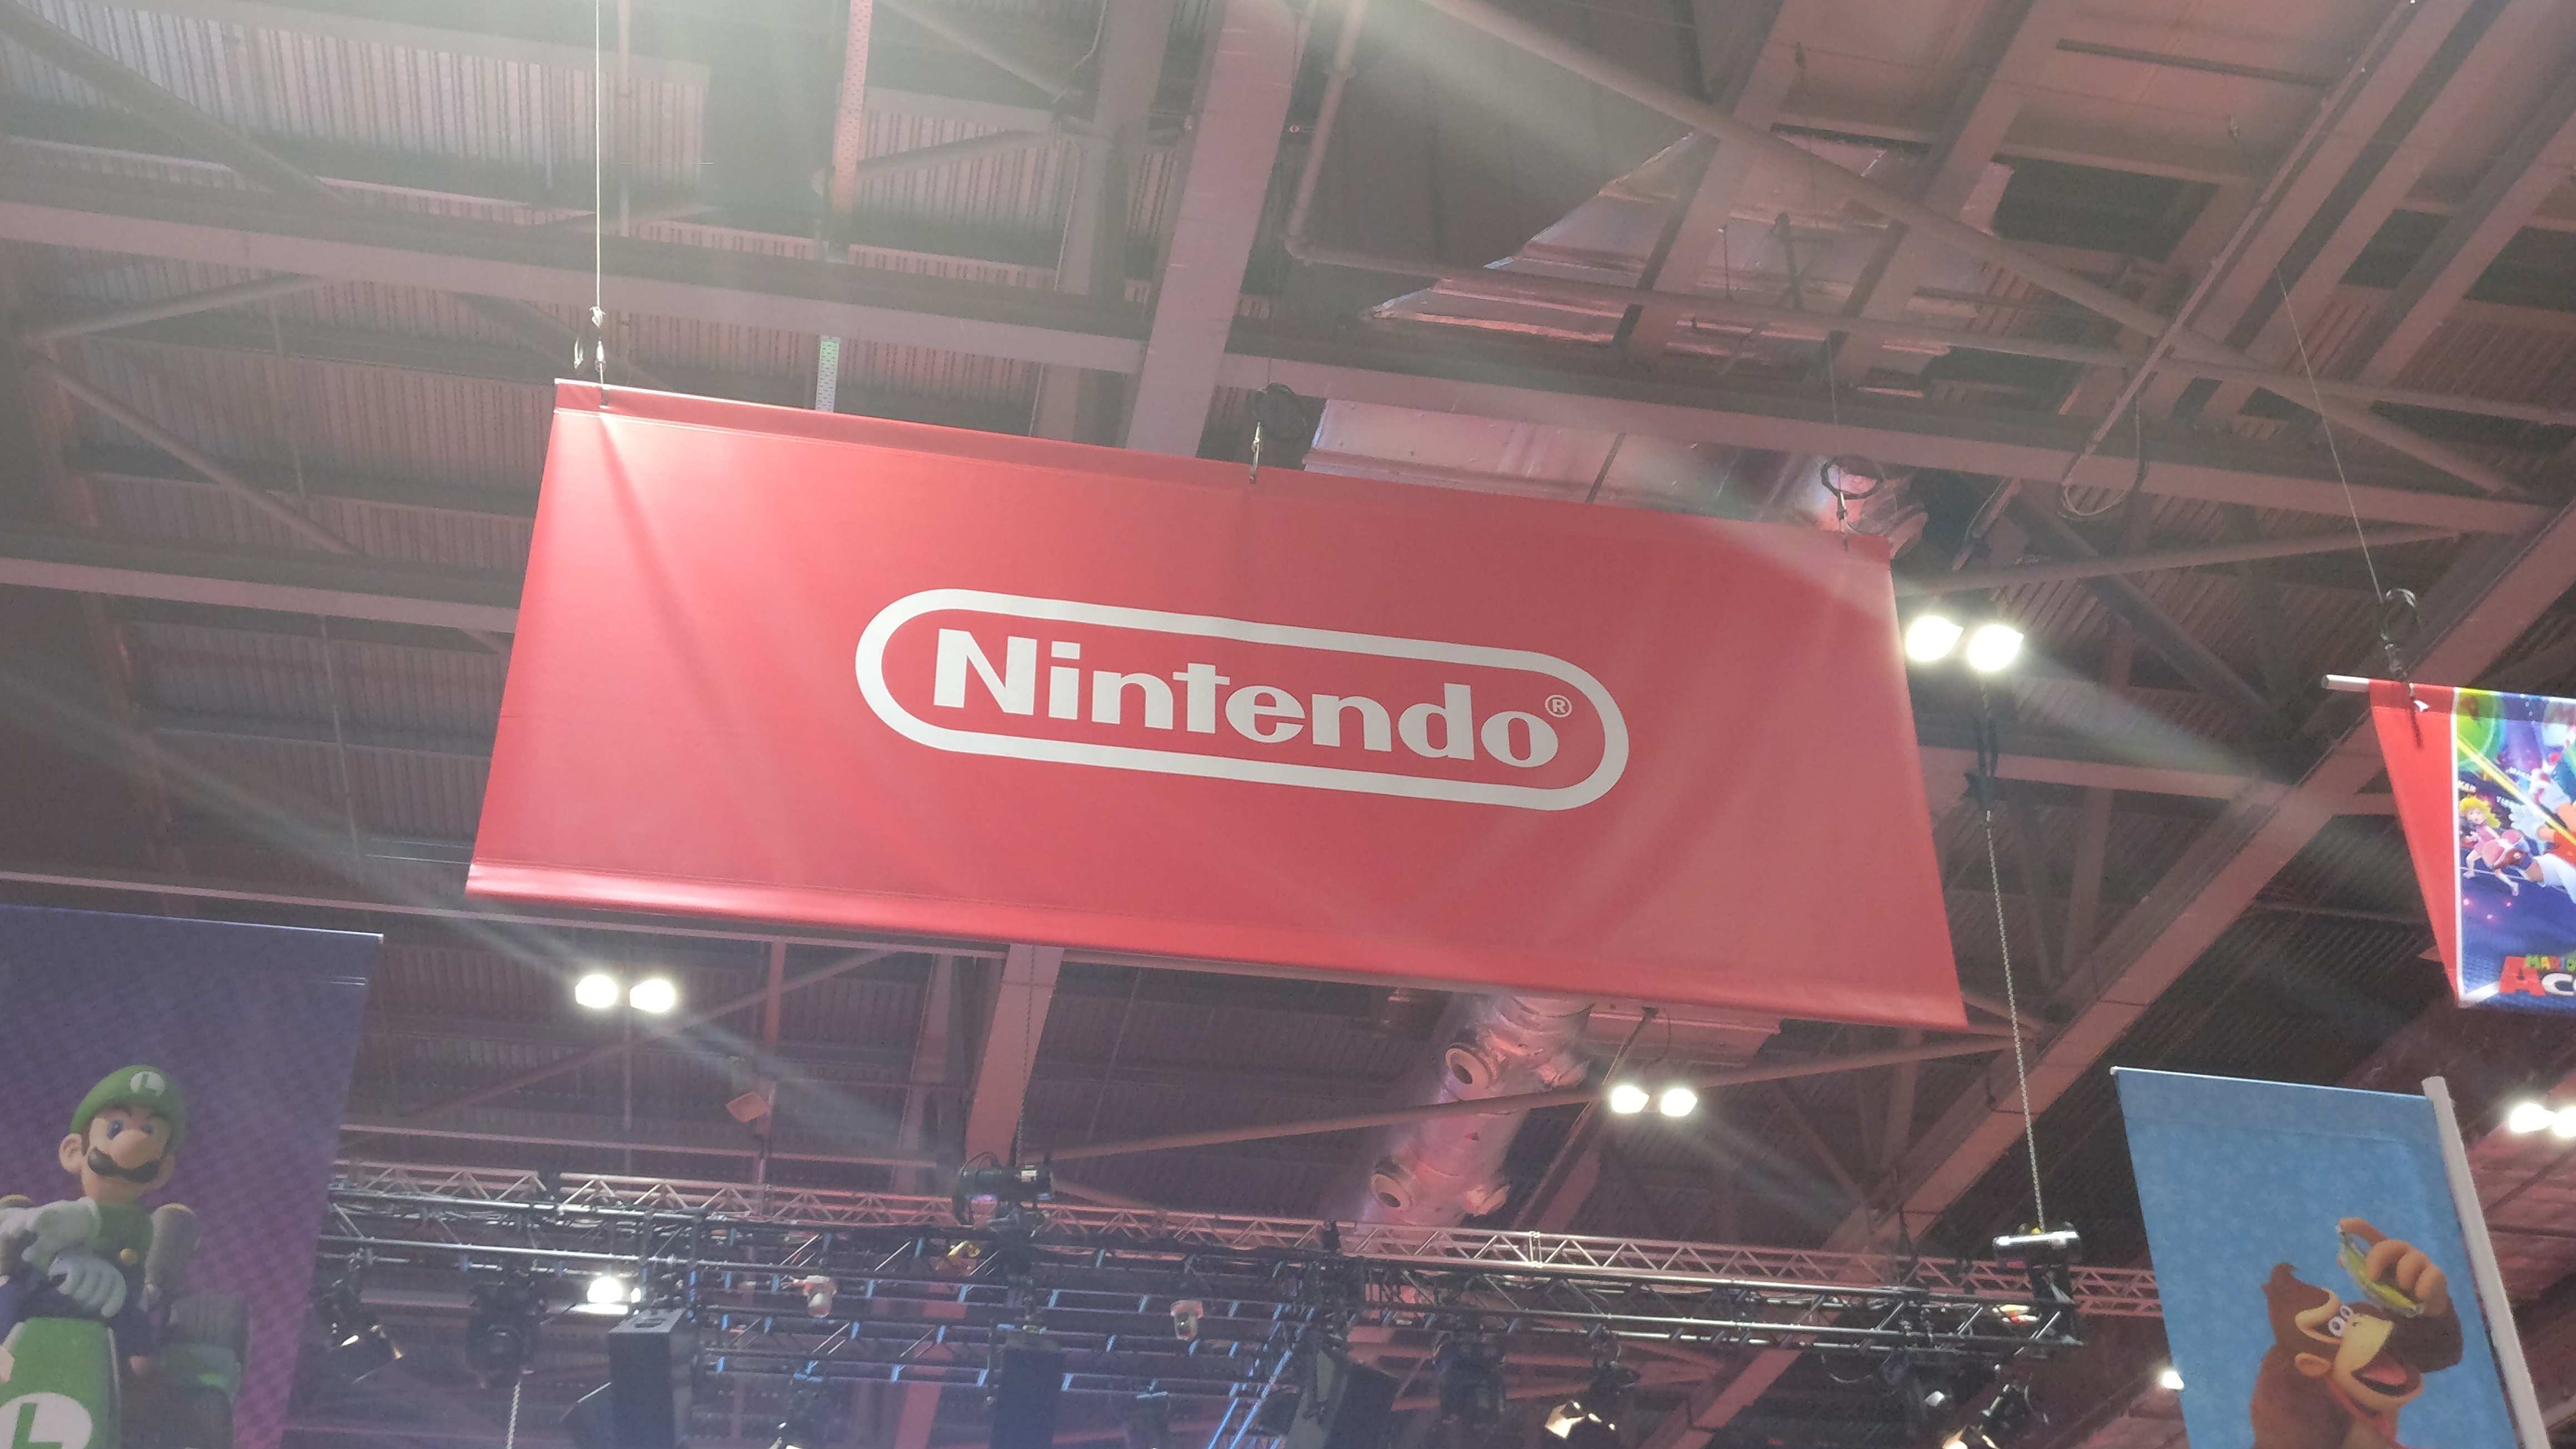 Nintendo at MCM London 2018